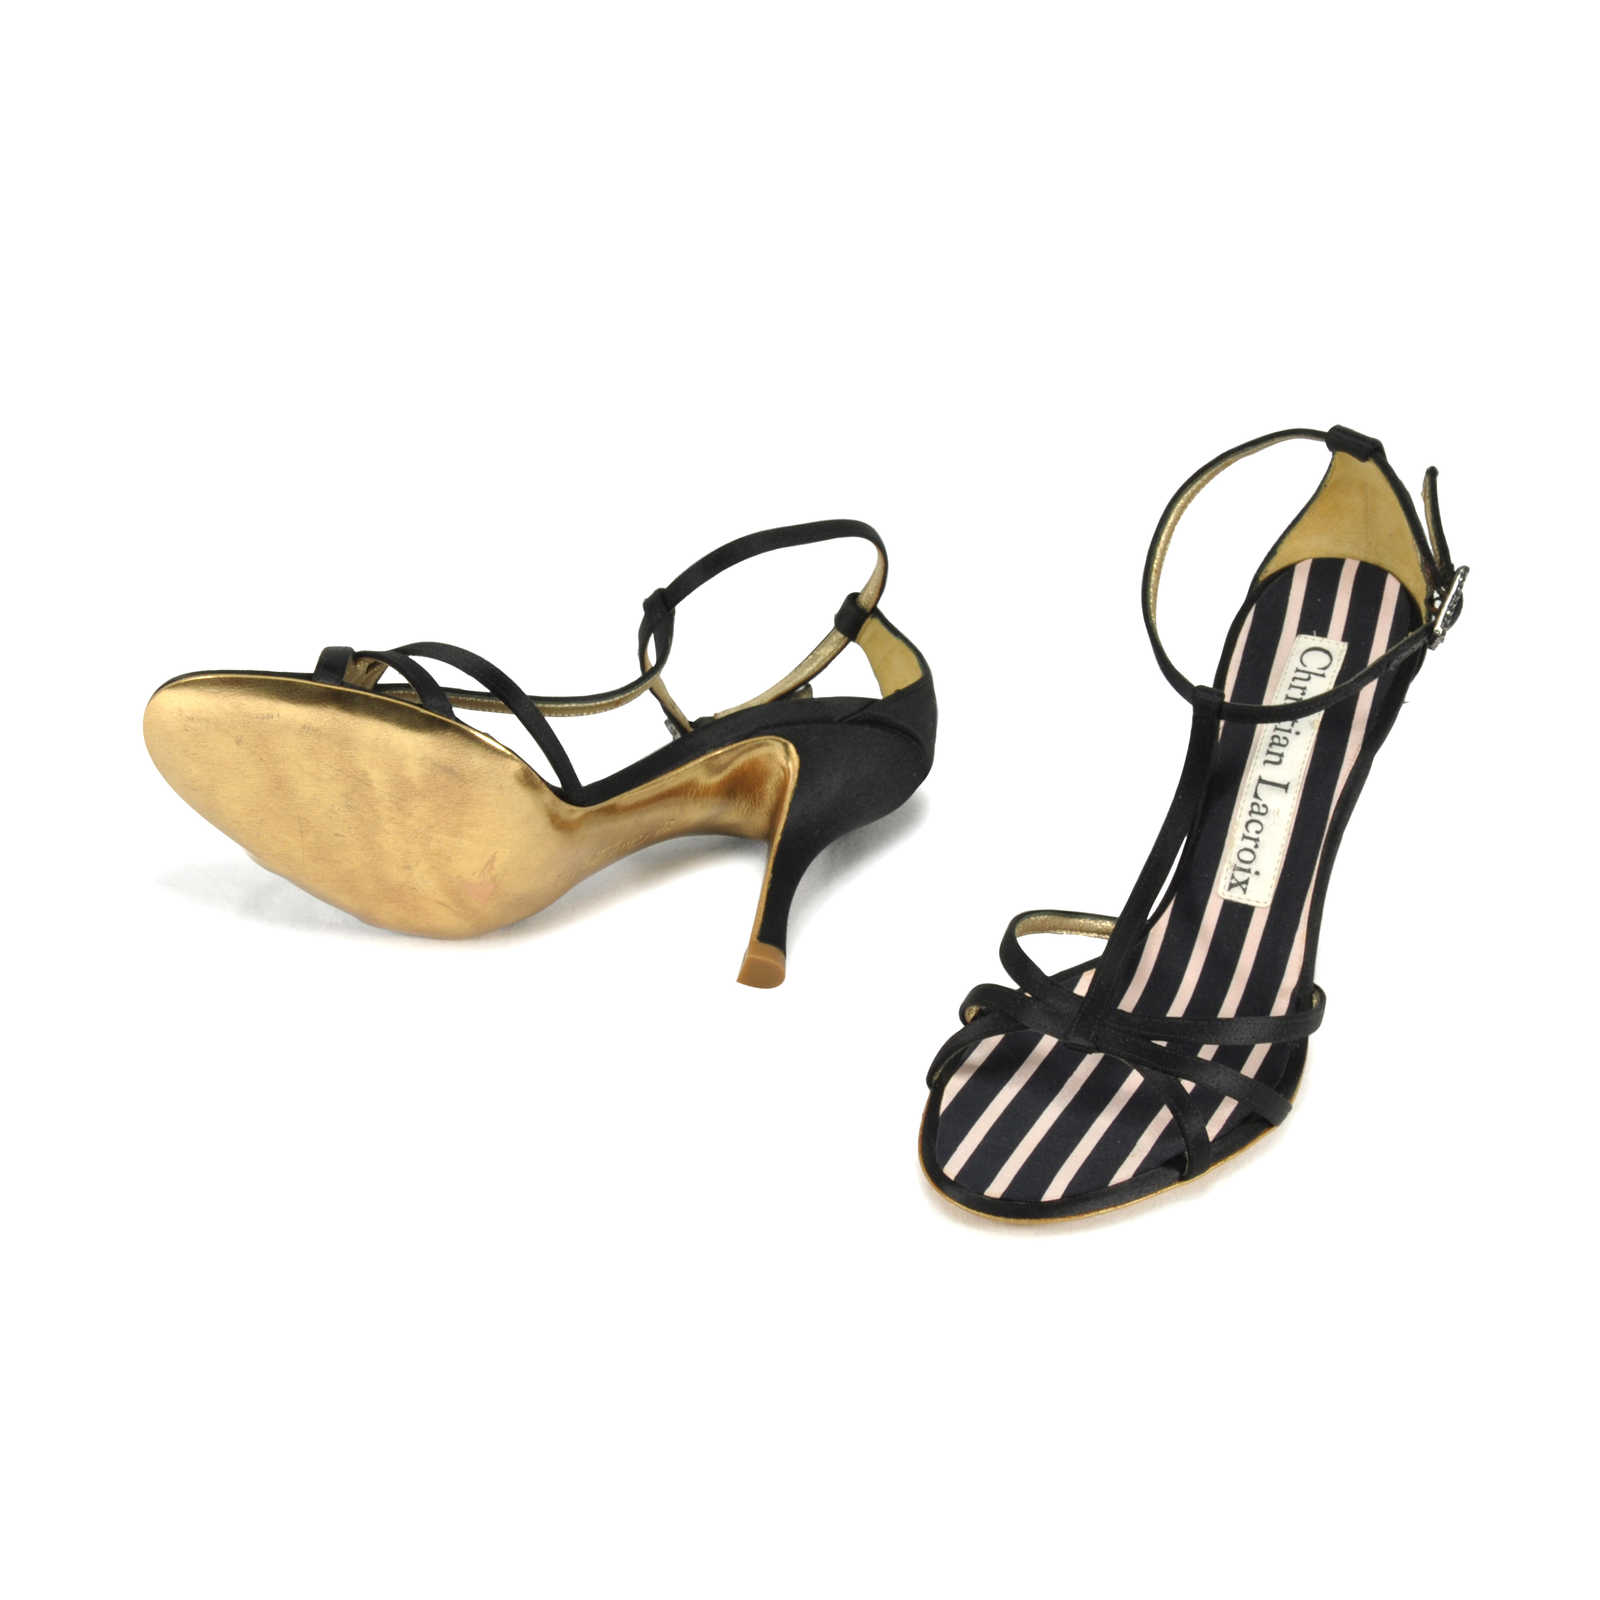 Christian Lacroix Satin Slingback Sandals quality outlet store outlet factory outlet 3gERtb